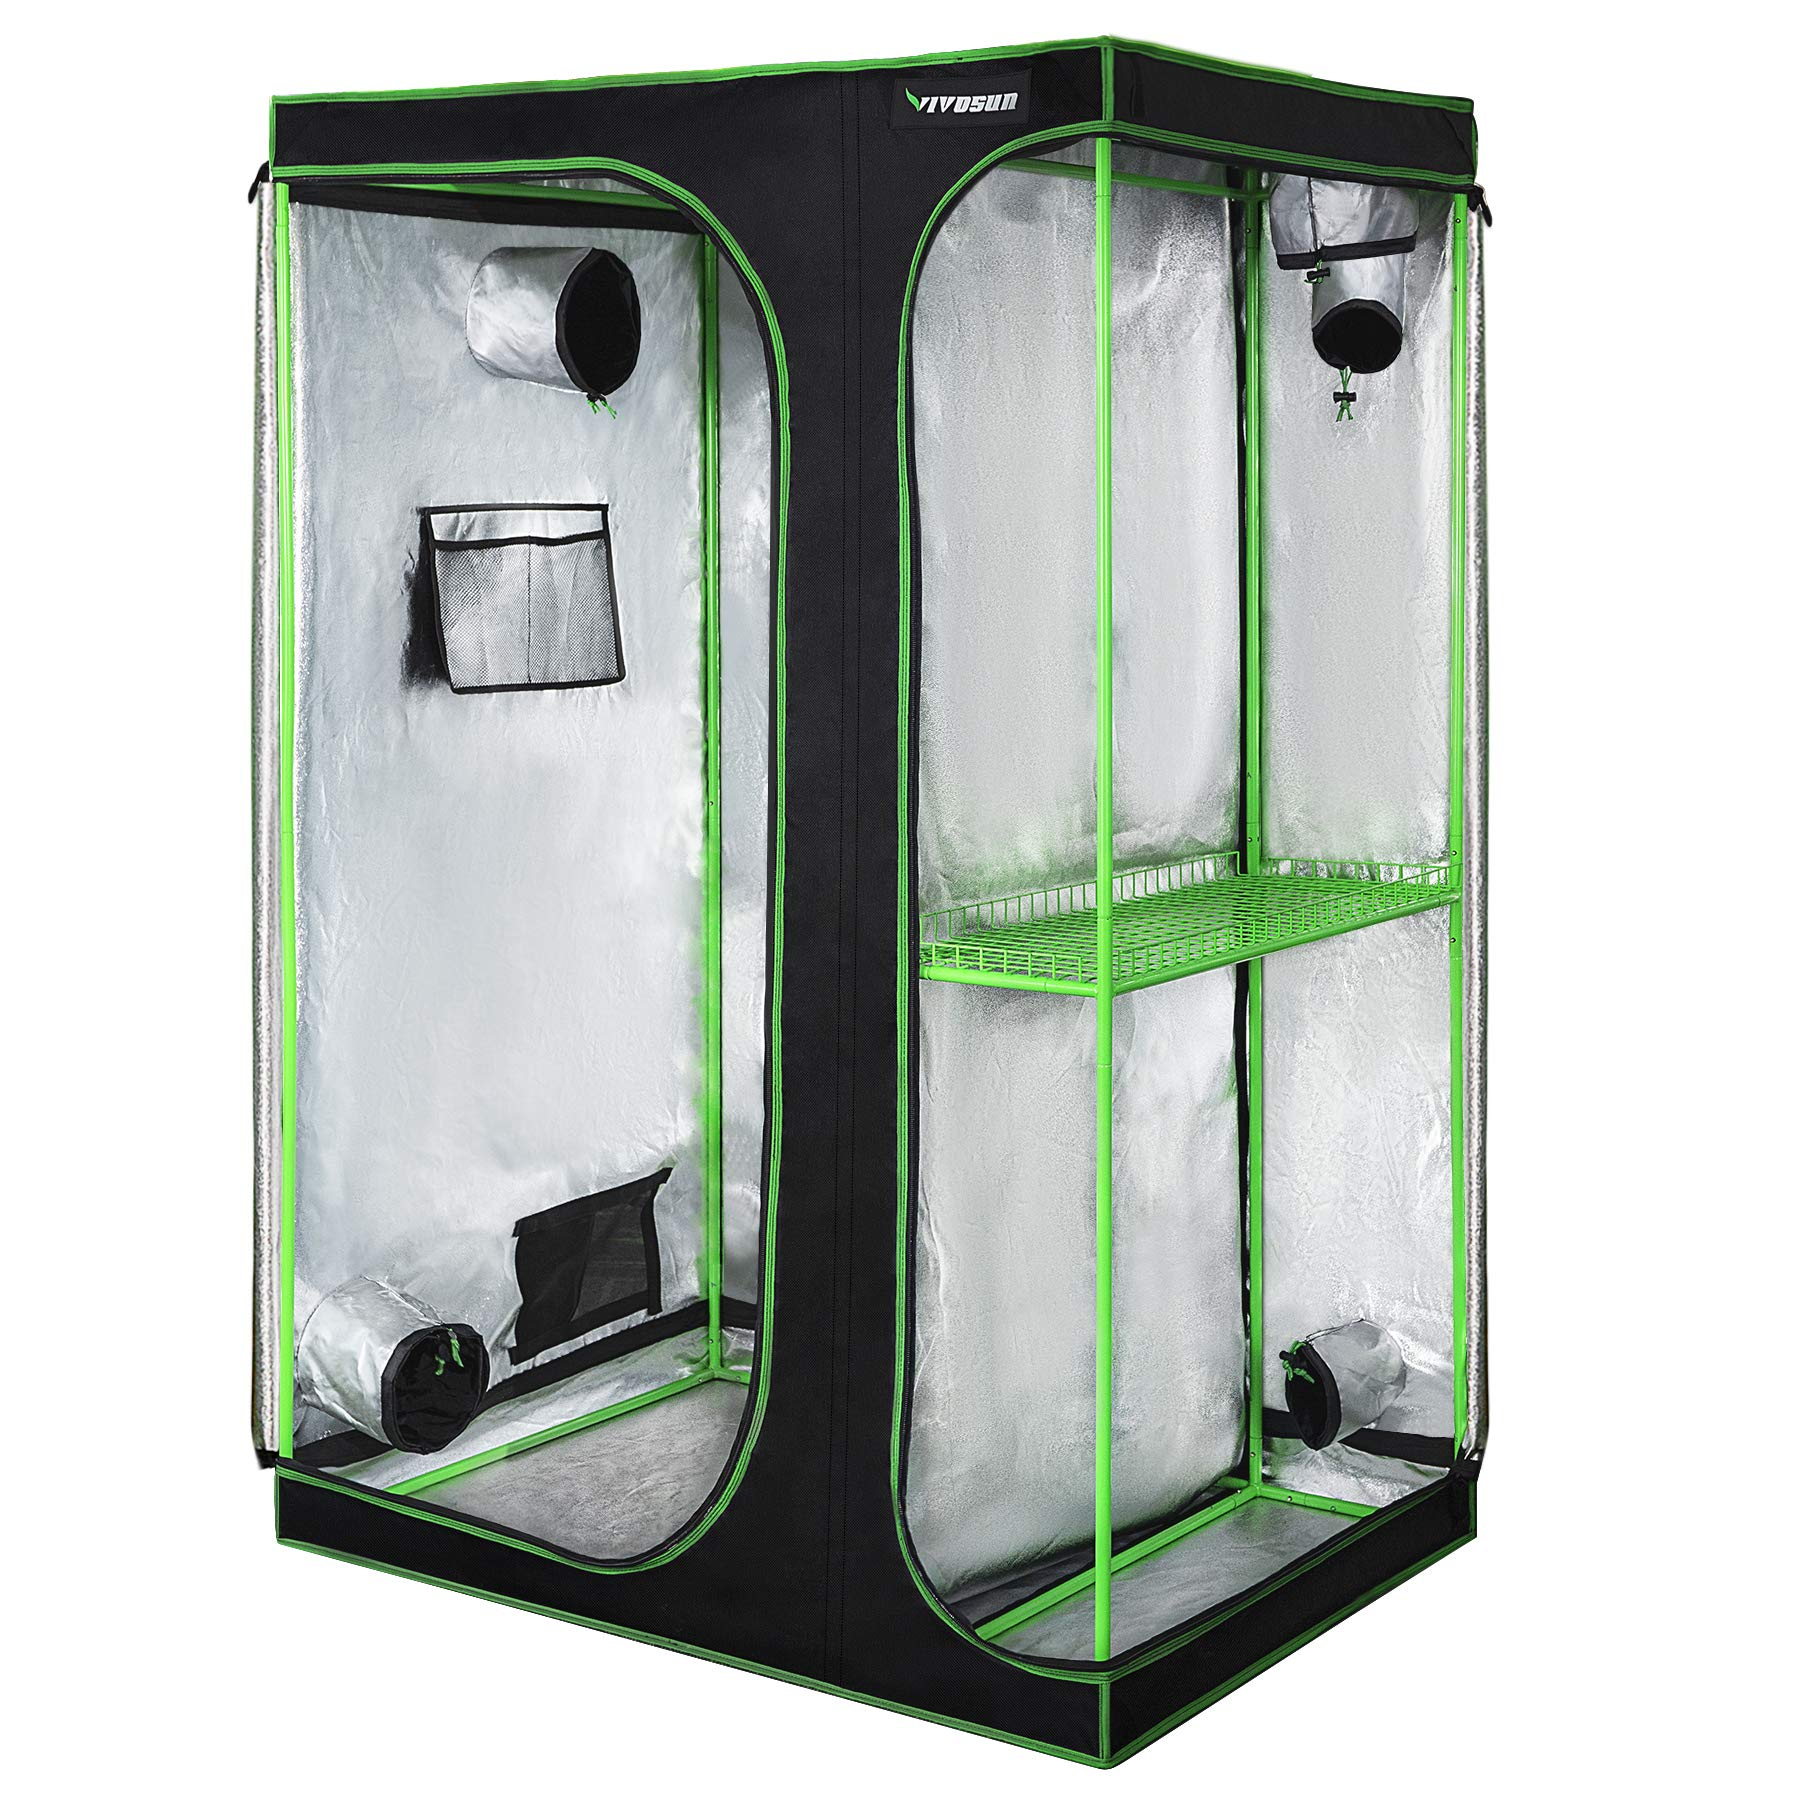 VIVOSUN 2-in-1 48''x36''x72'' Mylar Reflective Grow Tent for Indoor Hydroponic Growing System